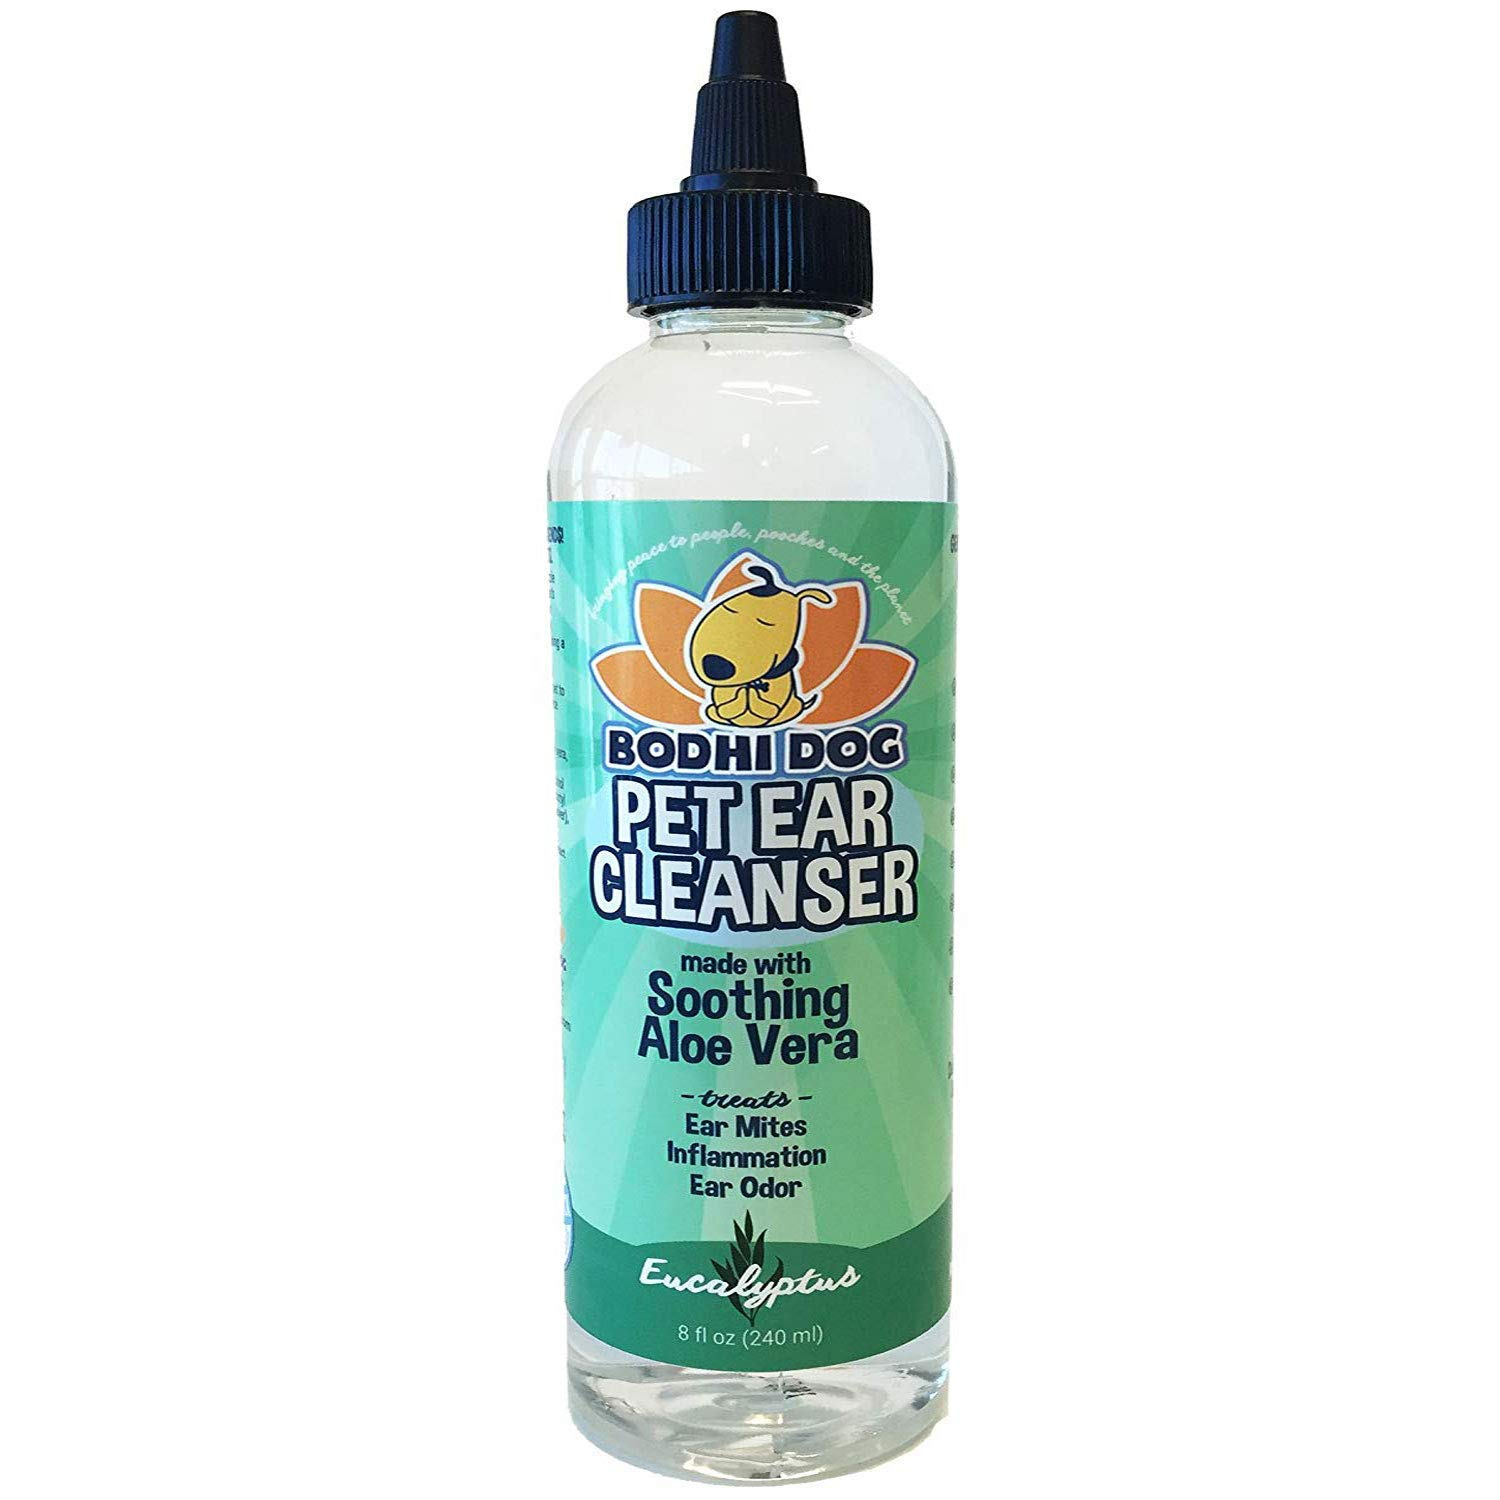 New All Natural Pet Ear Cleaner for Dogs and Cats   Eucalyptus & Aloe Vera Cleaning Treatment for Ear Mites Yeast Infection Fungus & Odor   Gentle Solution Cleanser for Ears - 1 Bottle 8oz (240ml)